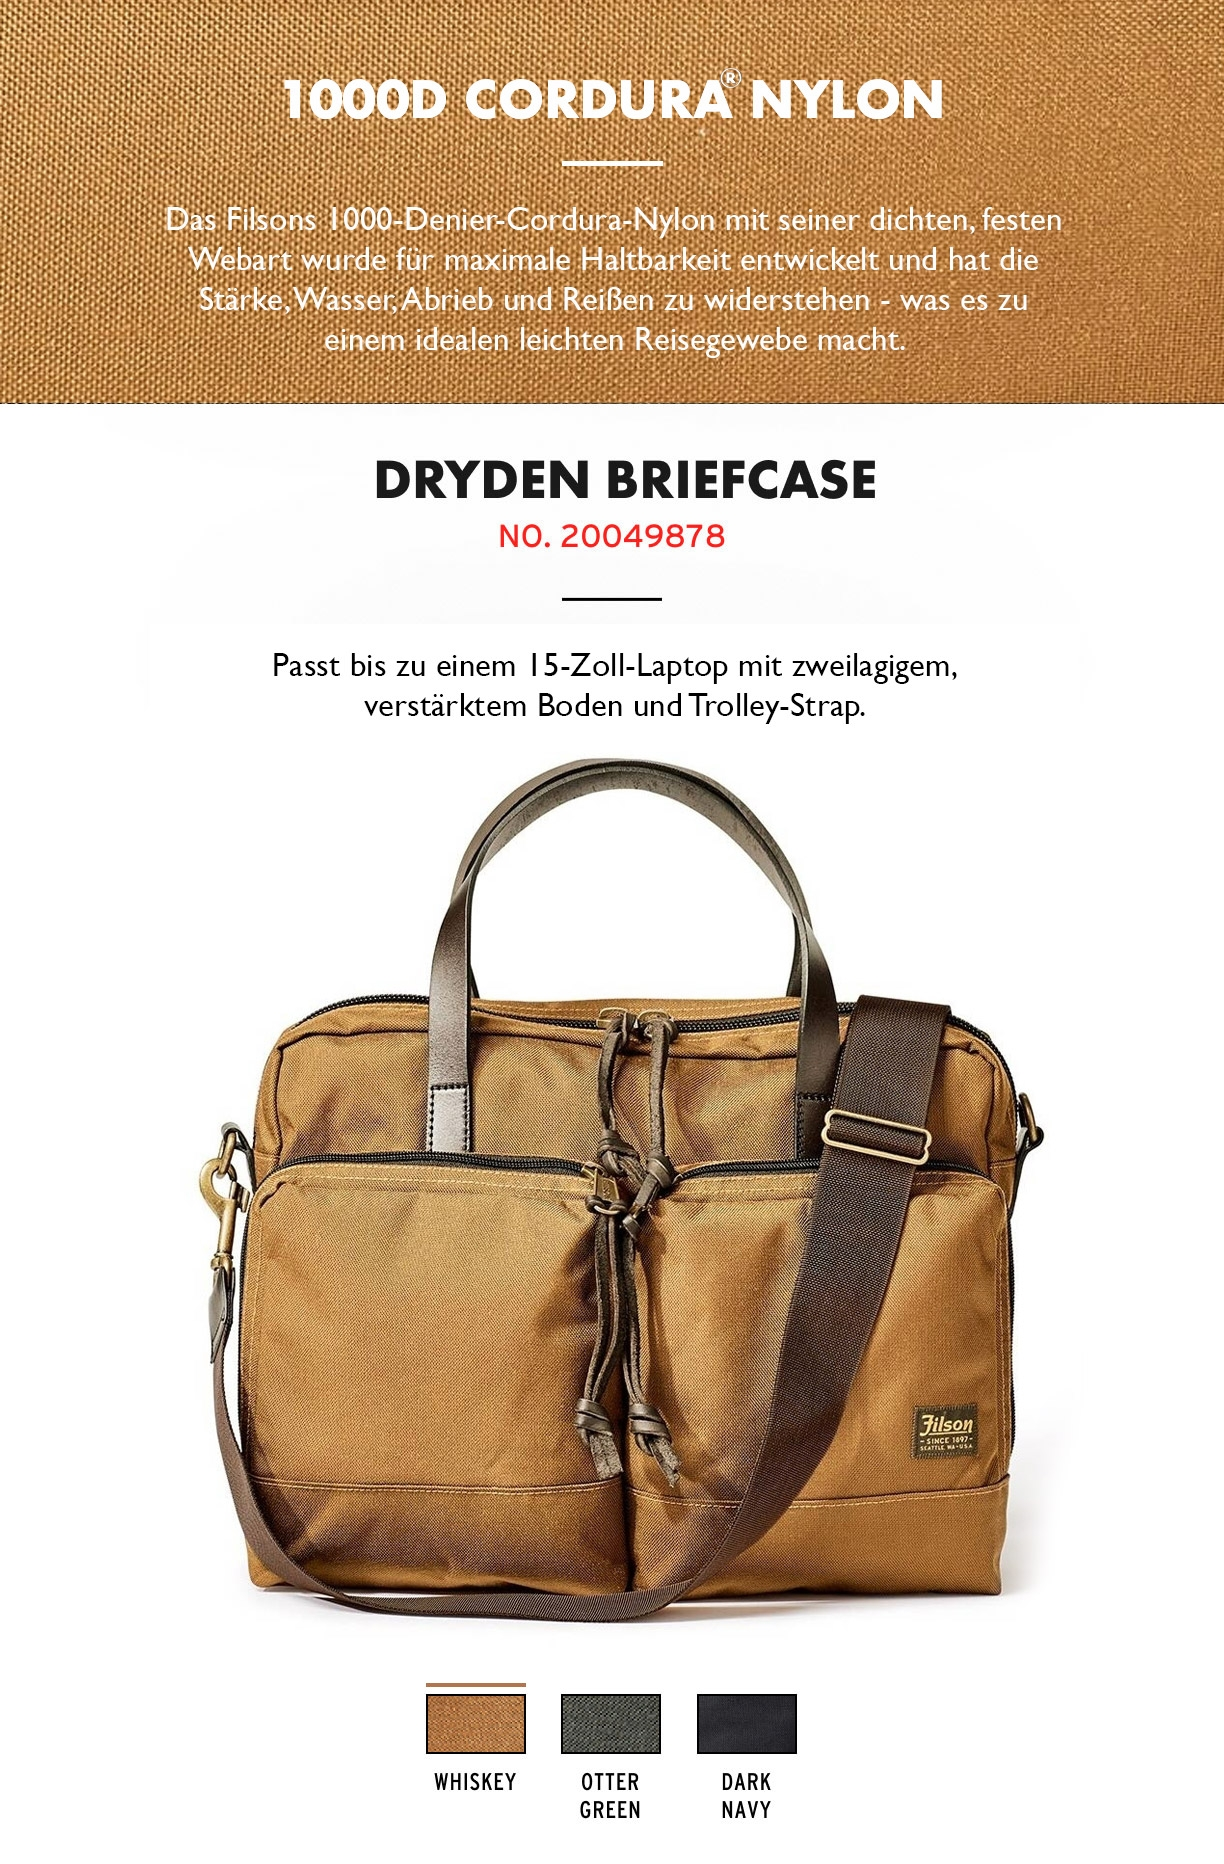 Filson Dryden Briefcase Whiskey Produktinformationen